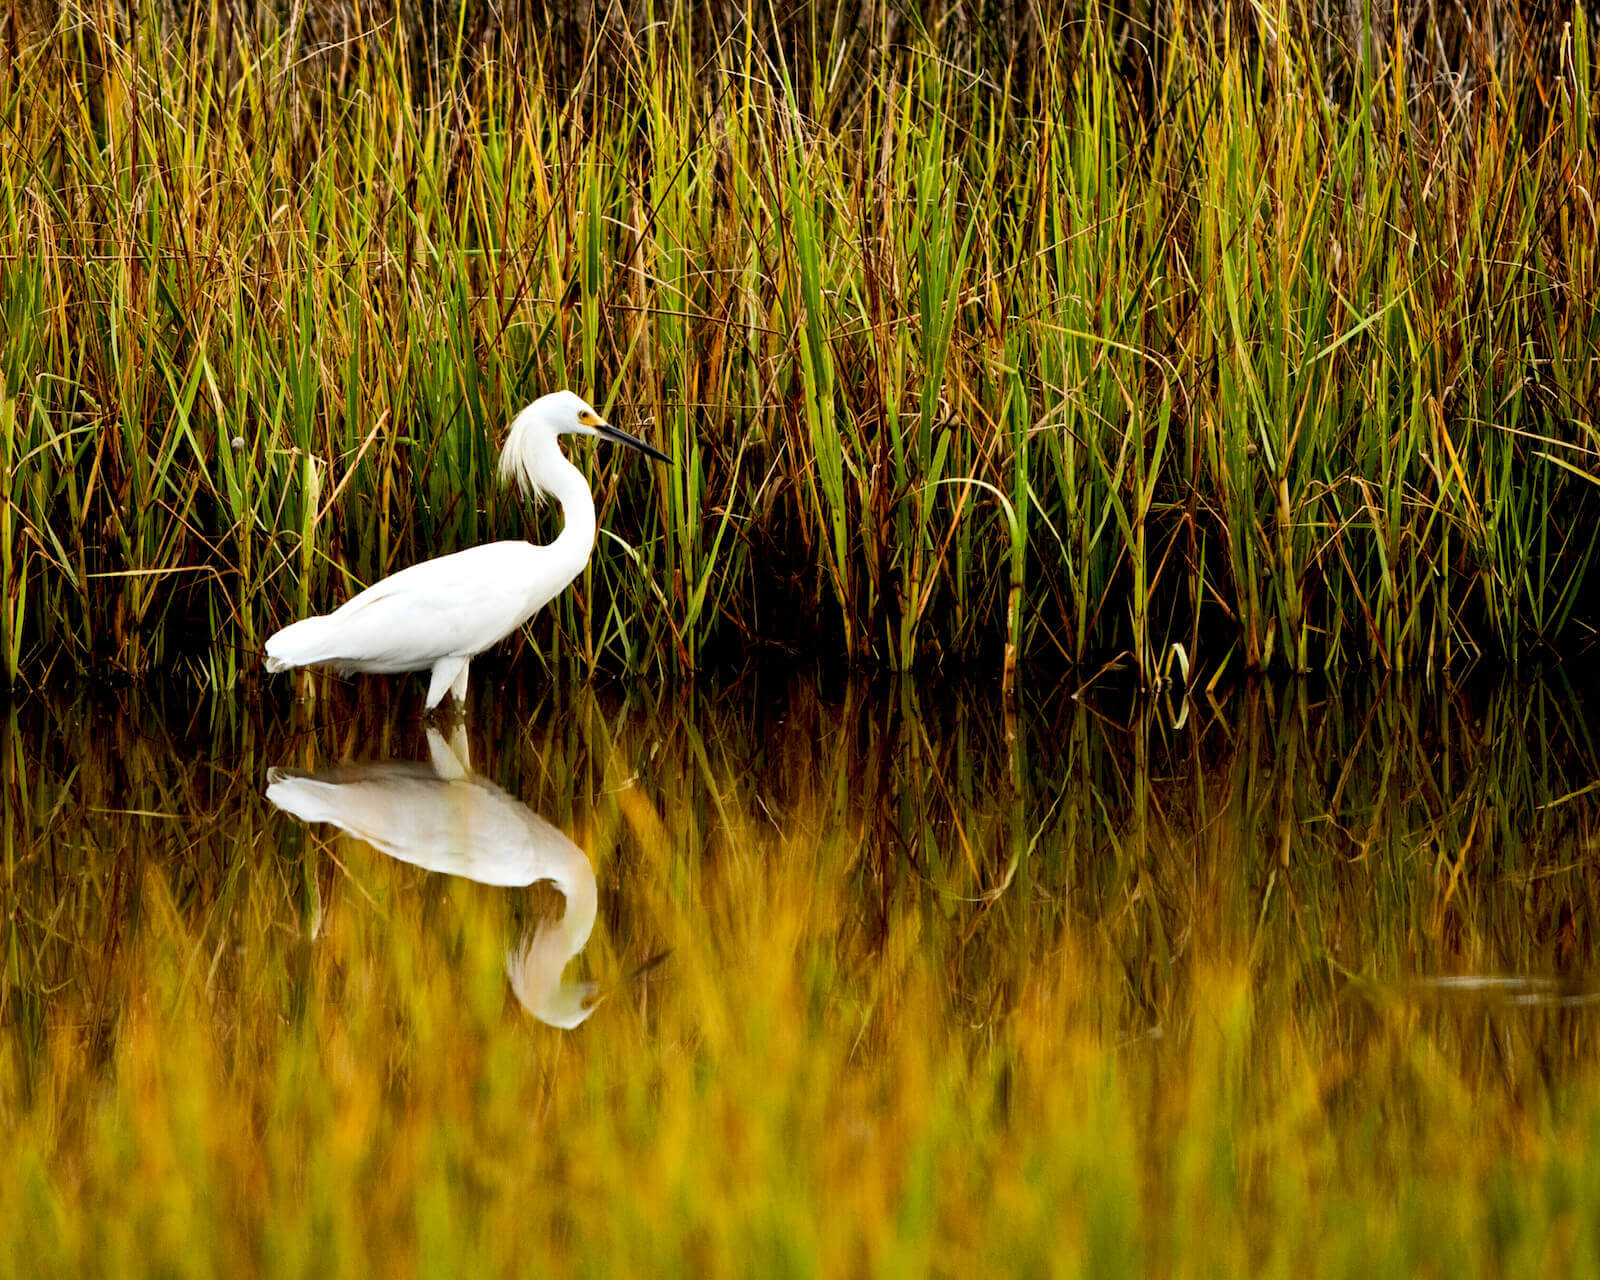 snowy-egret-hunting-at-bermuda-bluff-by-scott-quarforth-1600